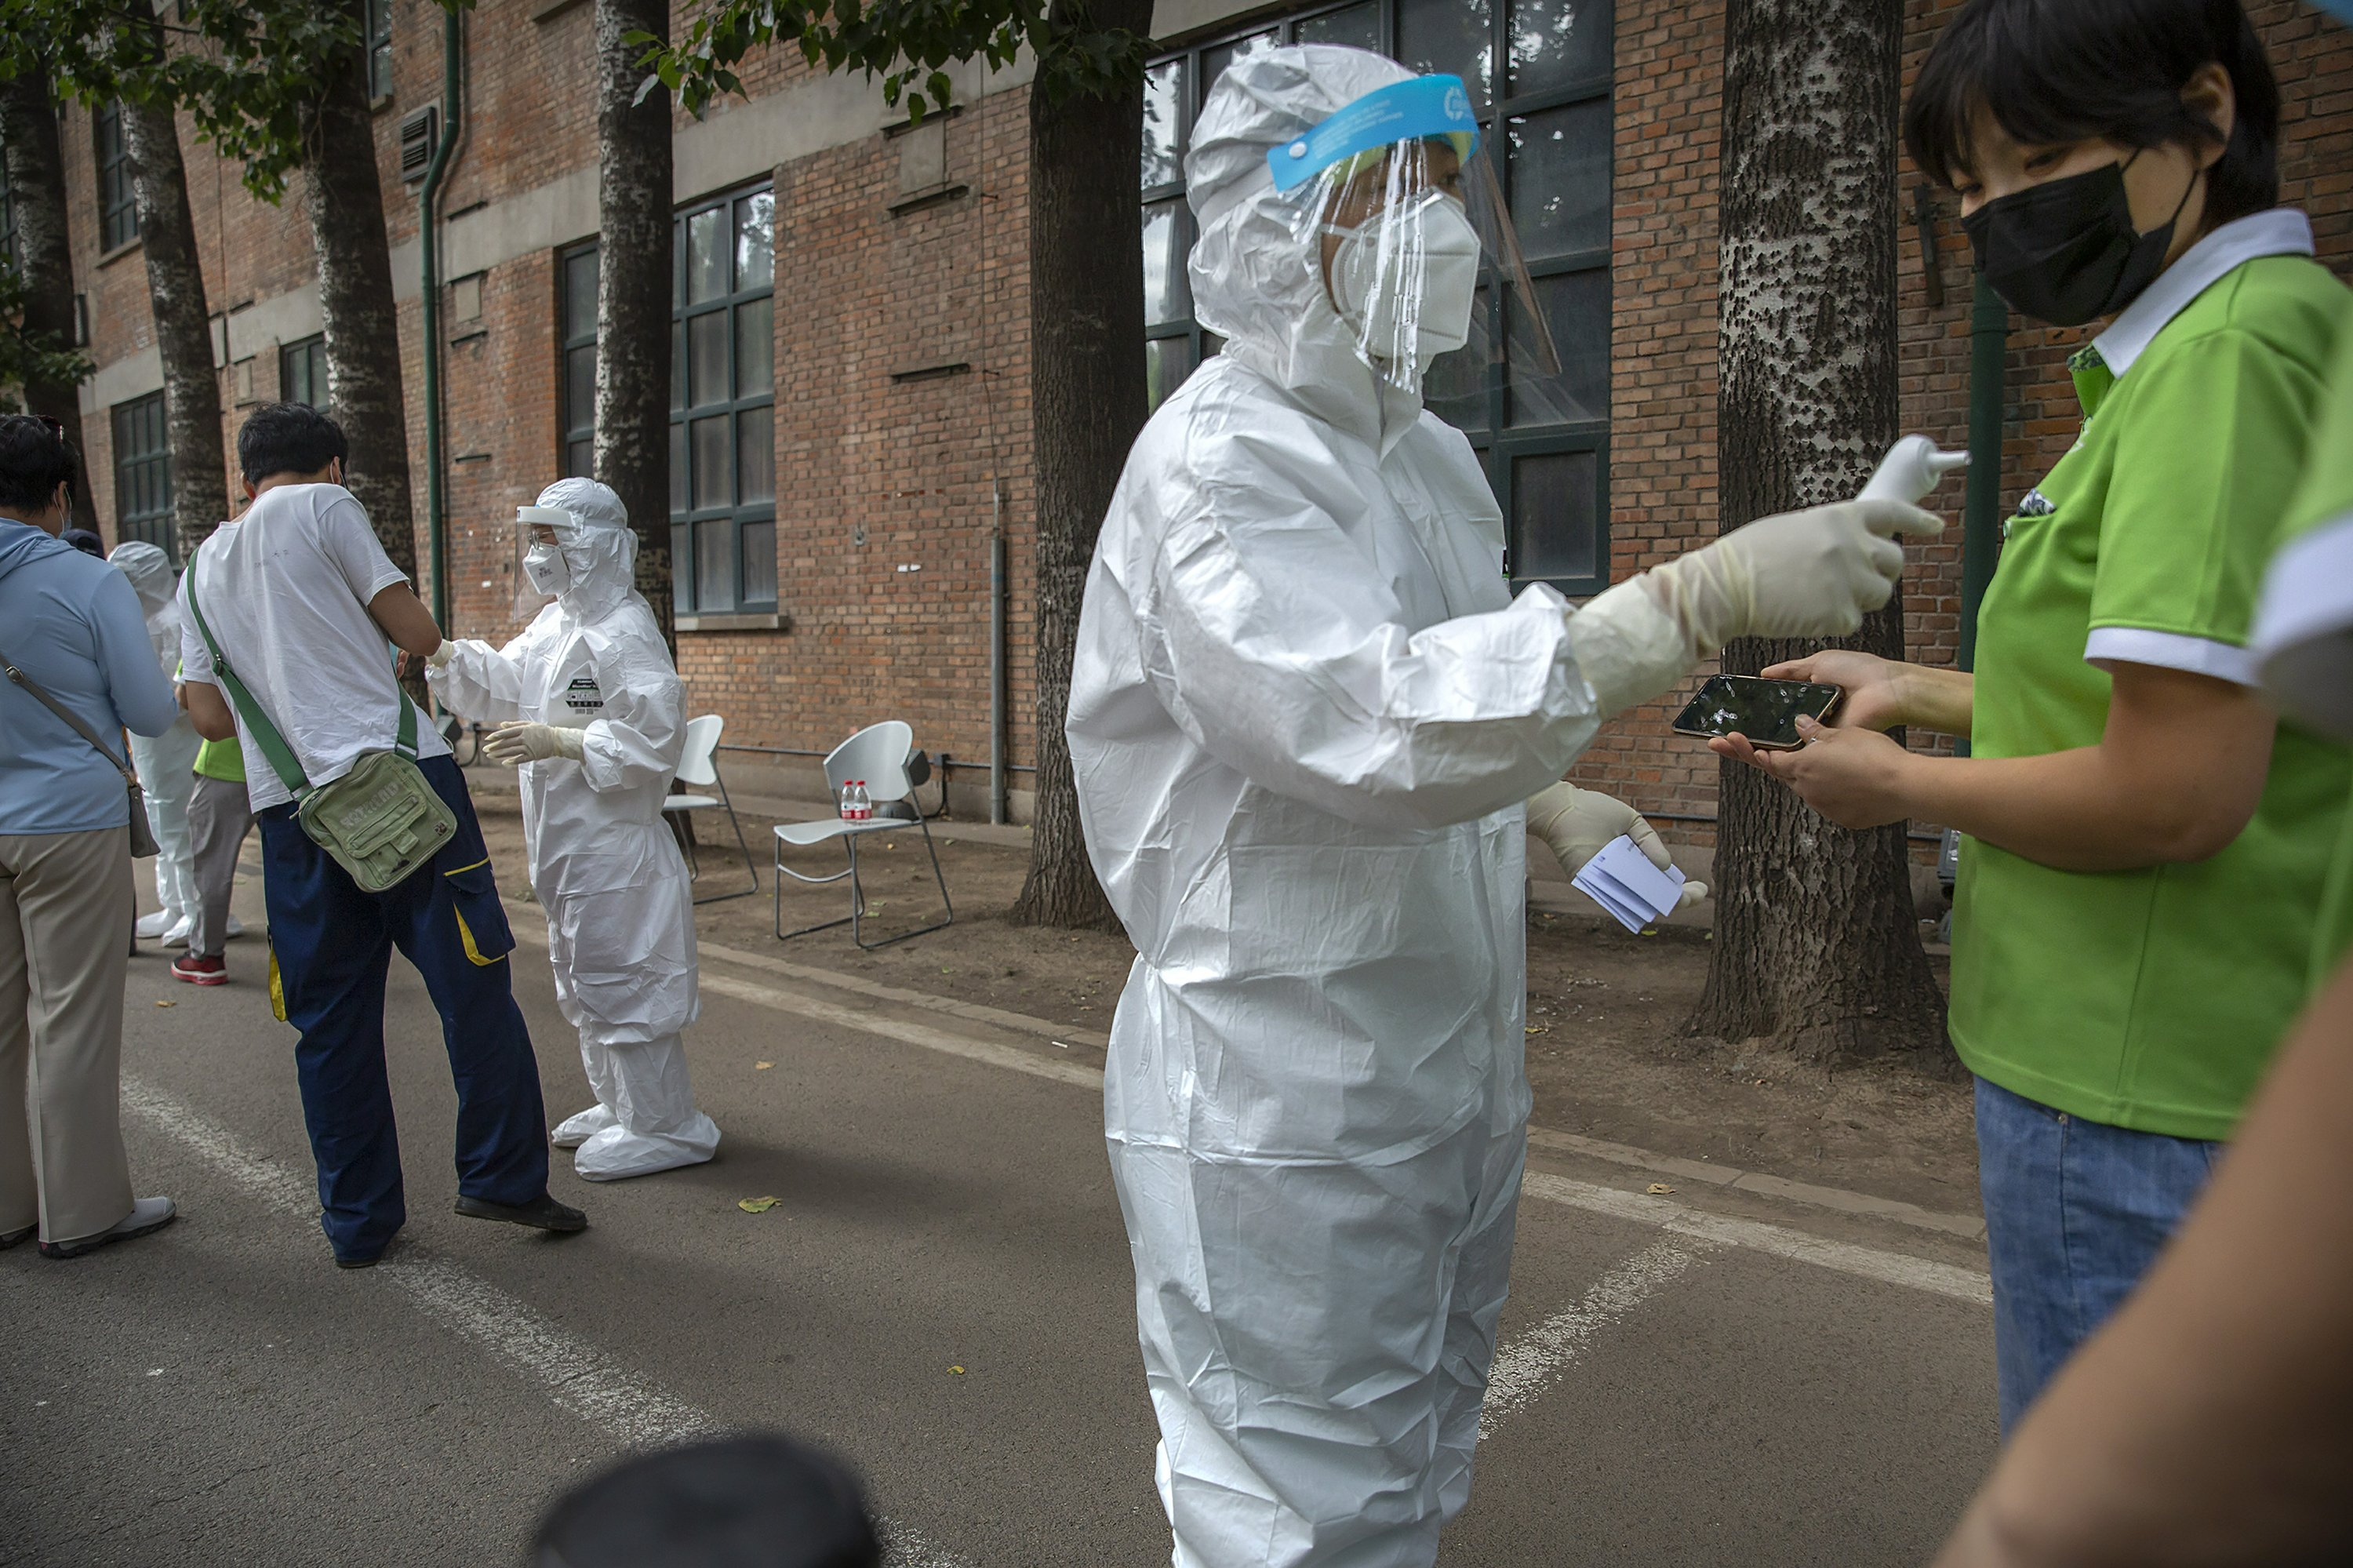 AP PHOTOS: A first-person view inside Beijing's virus tests thumbnail